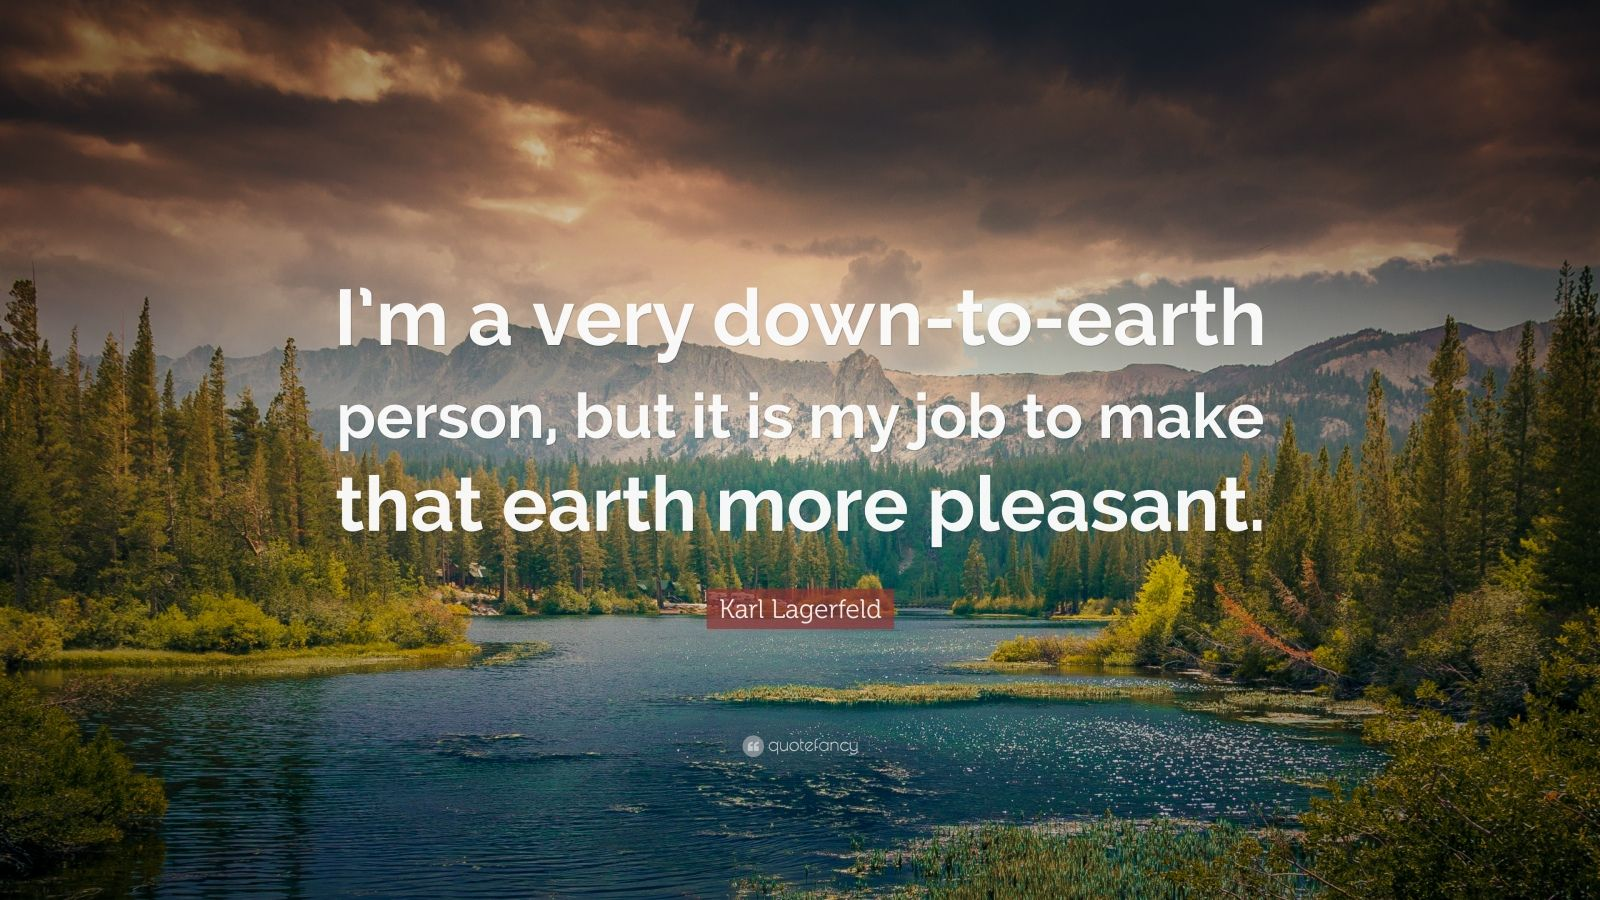 """Karl Lagerfeld Quote: """"I'm a very down-to-earth person, but it is my job to make that earth more pleasant."""""""